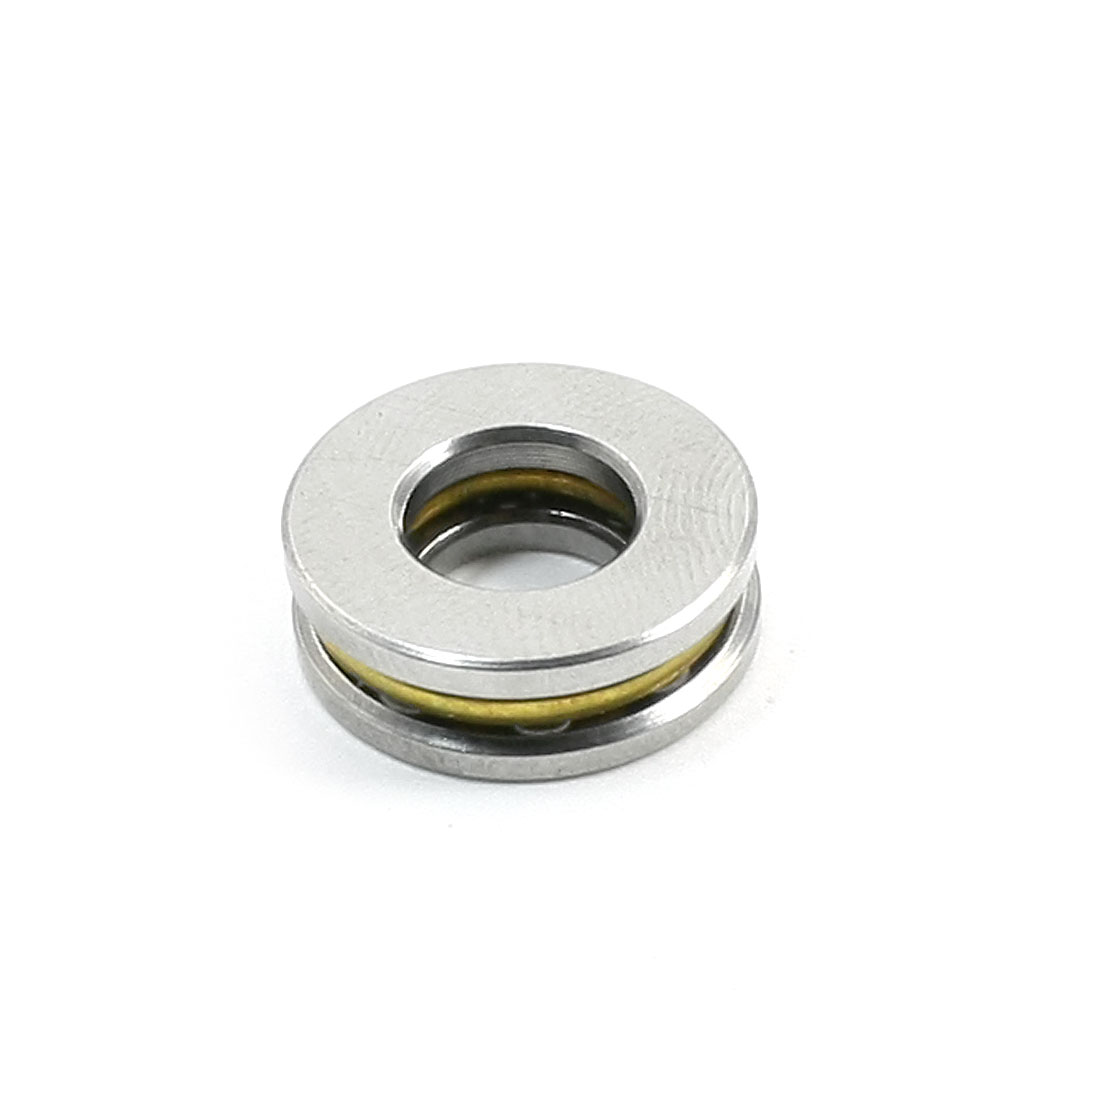 Spare Parts 15mm x 7mm x 5mm Silver Tone Ball Thrust Bearing